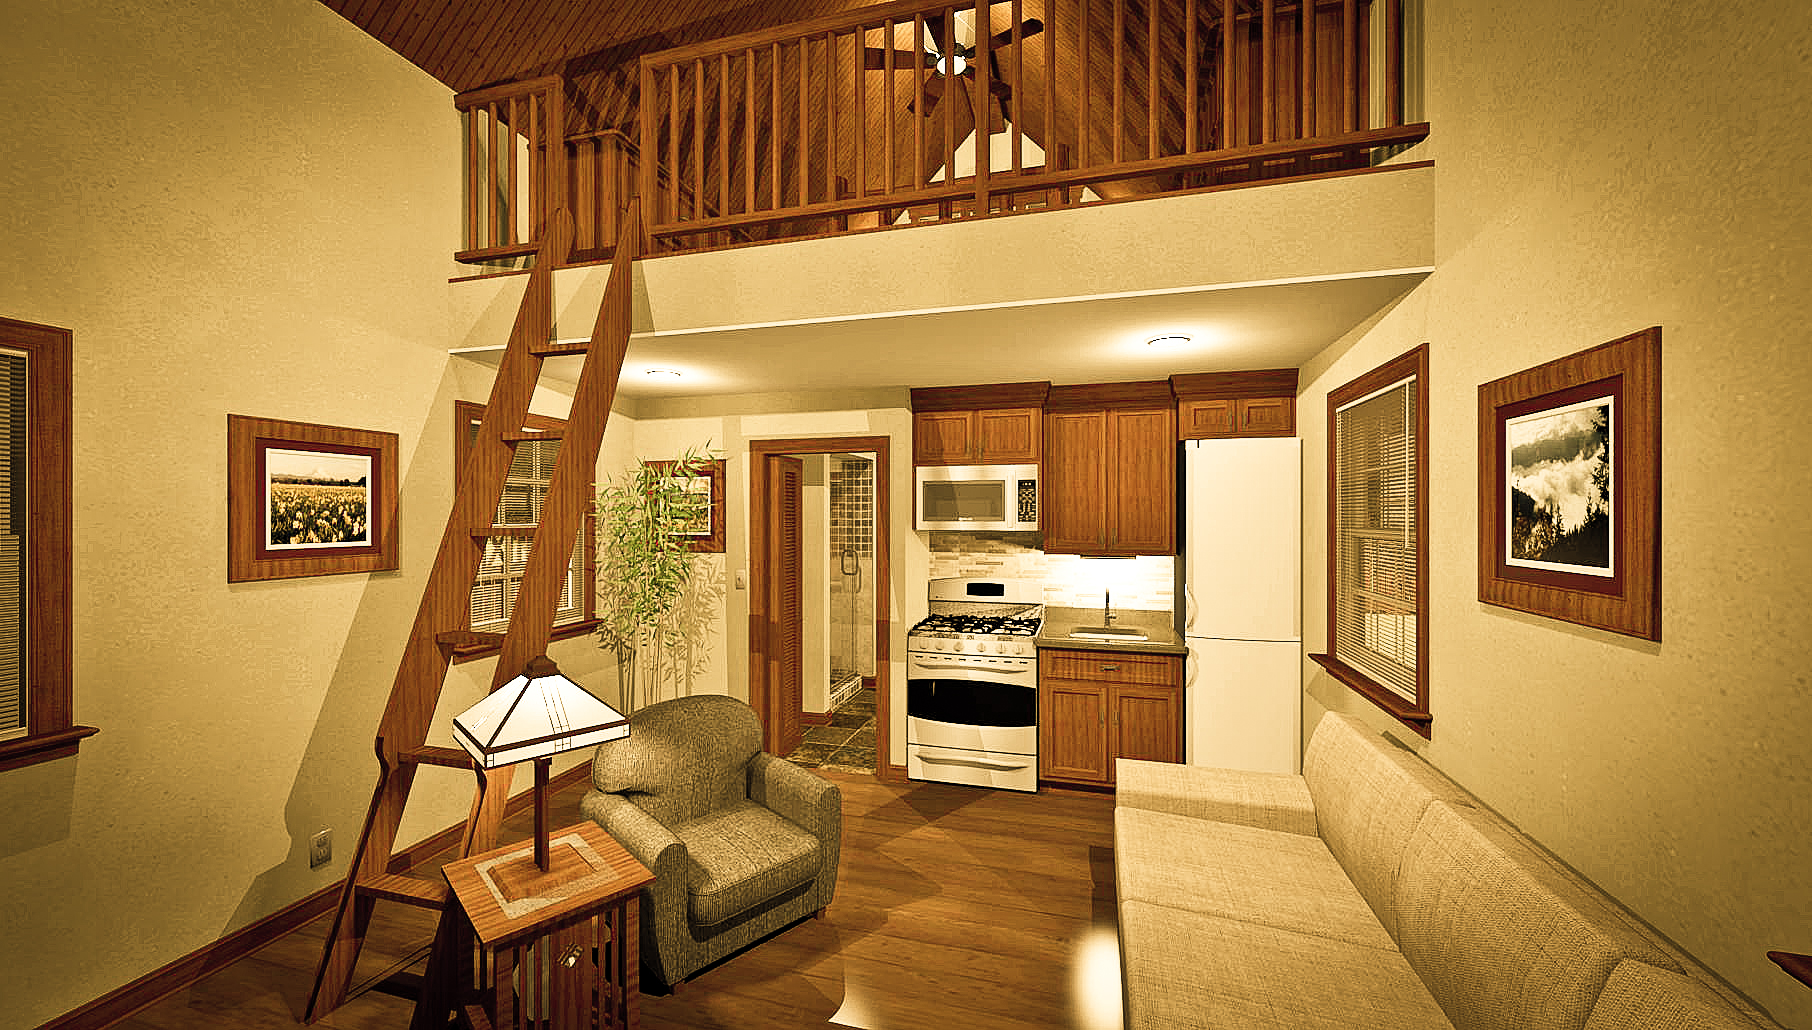 Enjoyable Texas Tiny Homes Plan 448 Largest Home Design Picture Inspirations Pitcheantrous